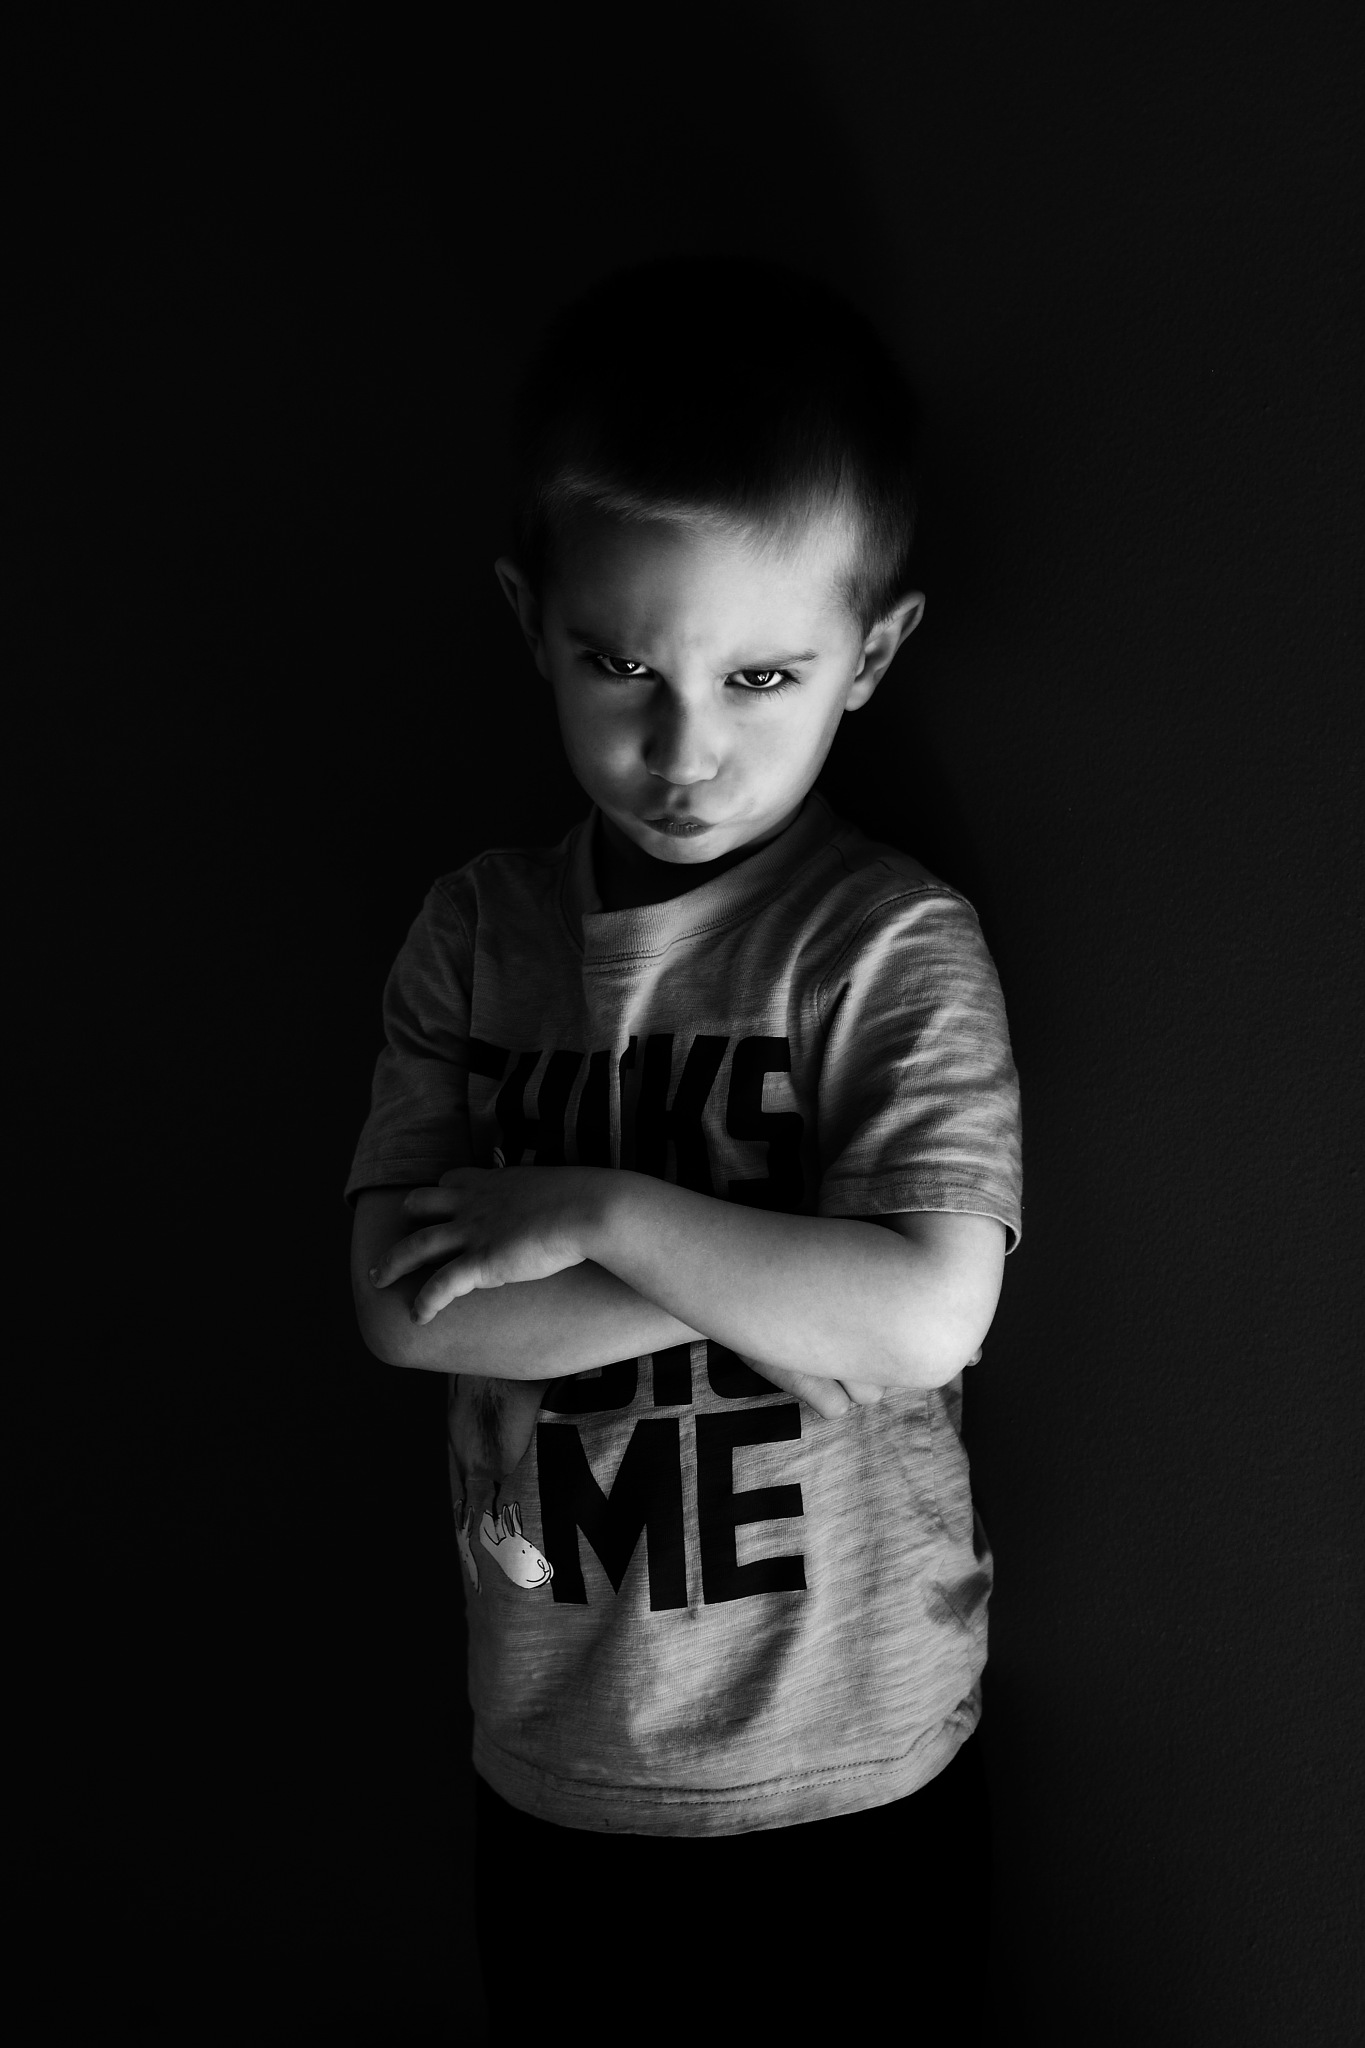 Boy with attitude  by Mike Sullivan